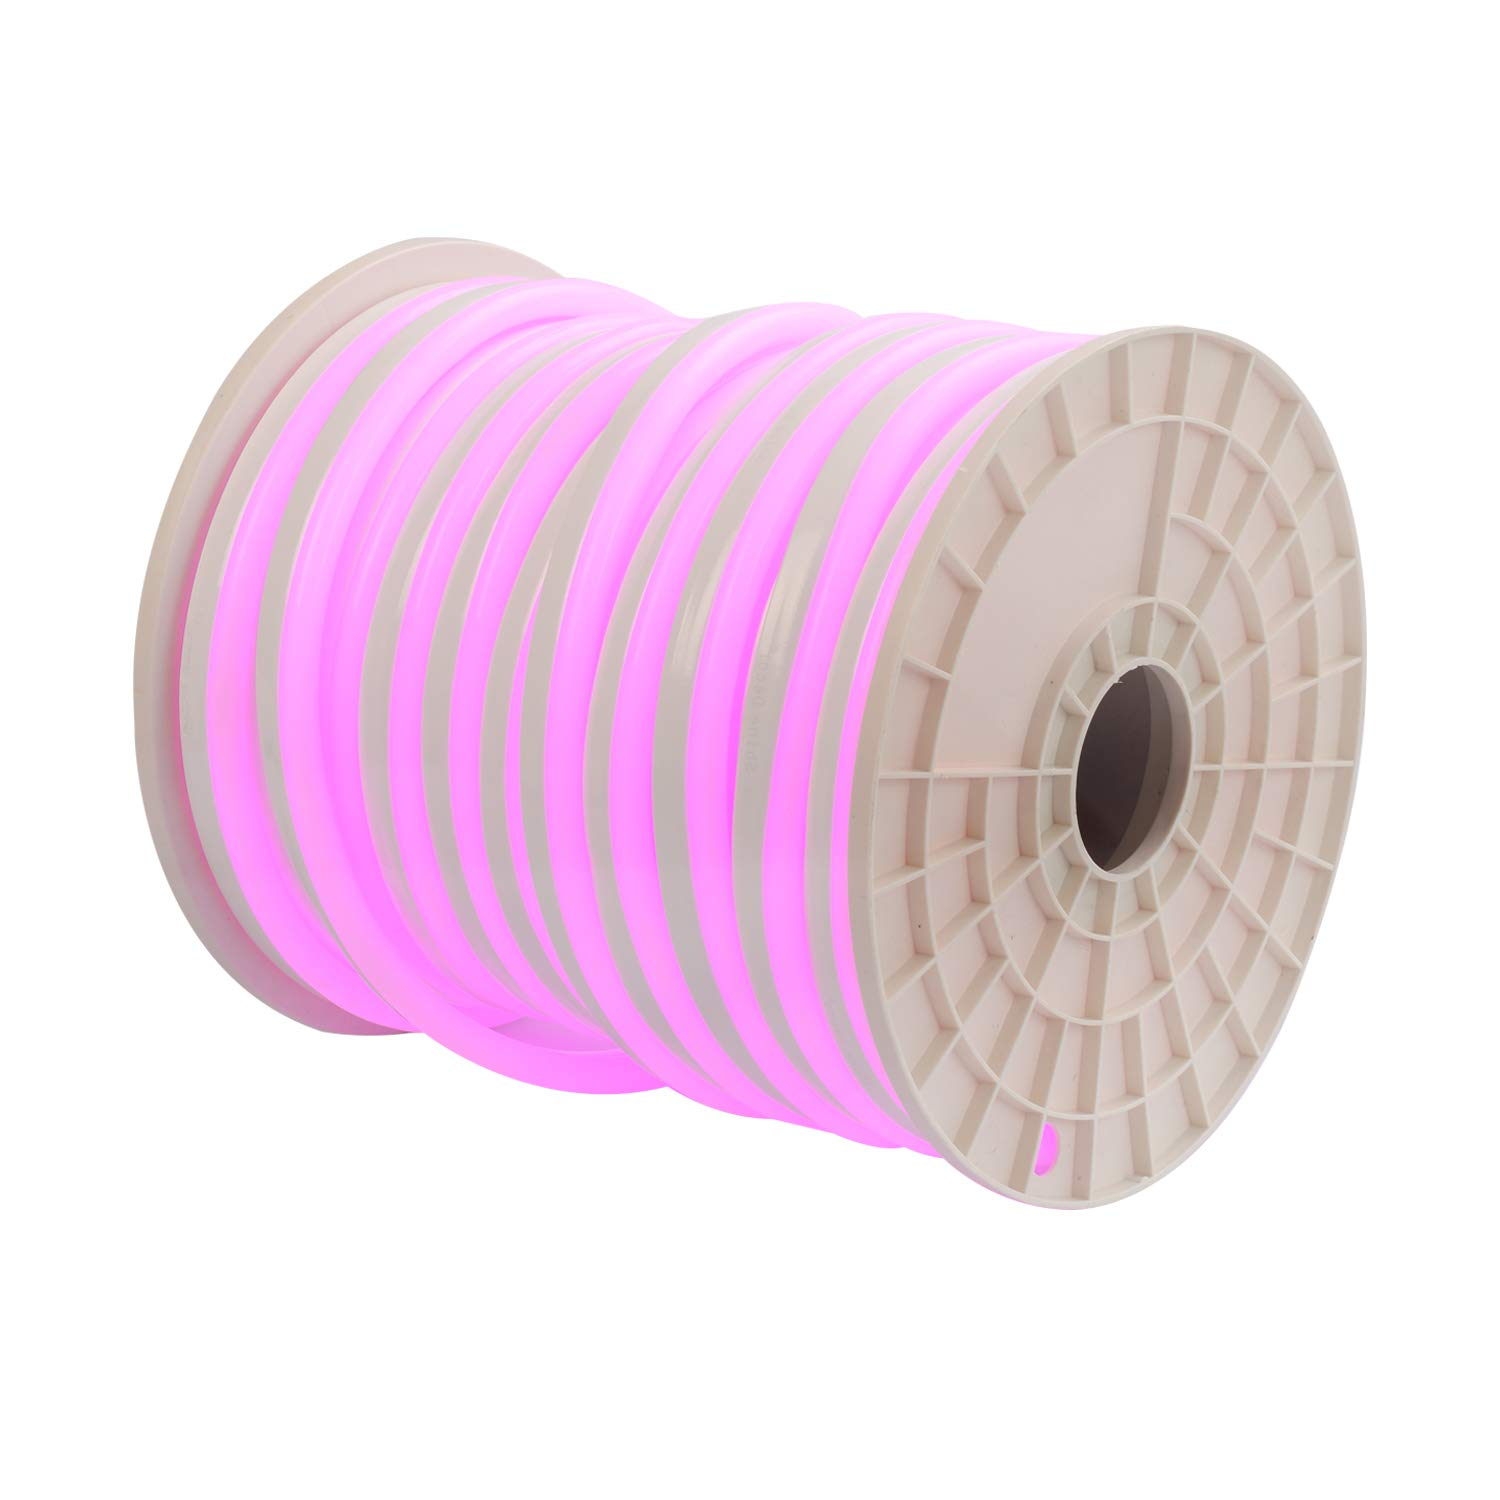 Shine Decor 15x25mm LED Neon Lights, 110V Dimmable Flexible Waterproof Rope Lights, 2835 120LEDs/M, for Indoor Outdoor Commercial Lighting Decoration, Accessories Included, 150ft Pink